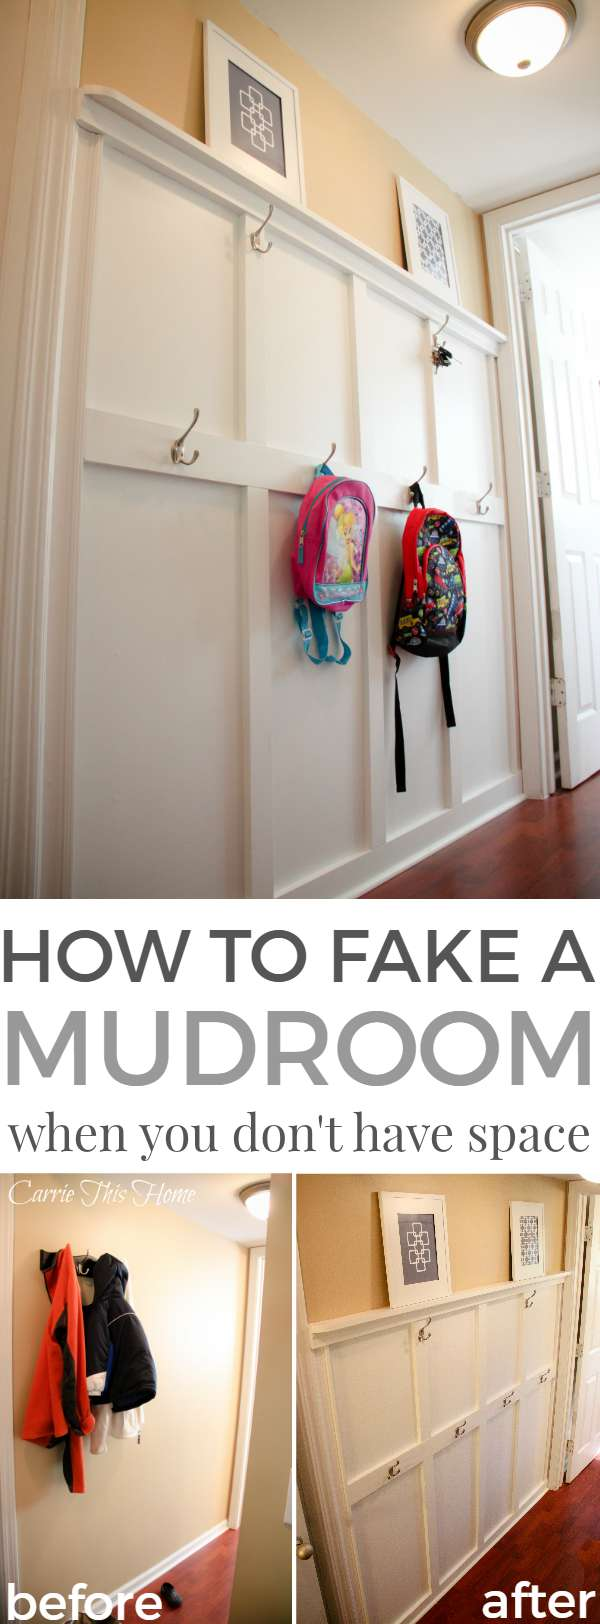 This is a must read if you're in need of storage solutions! How to fake a mudroom when you don't have the space